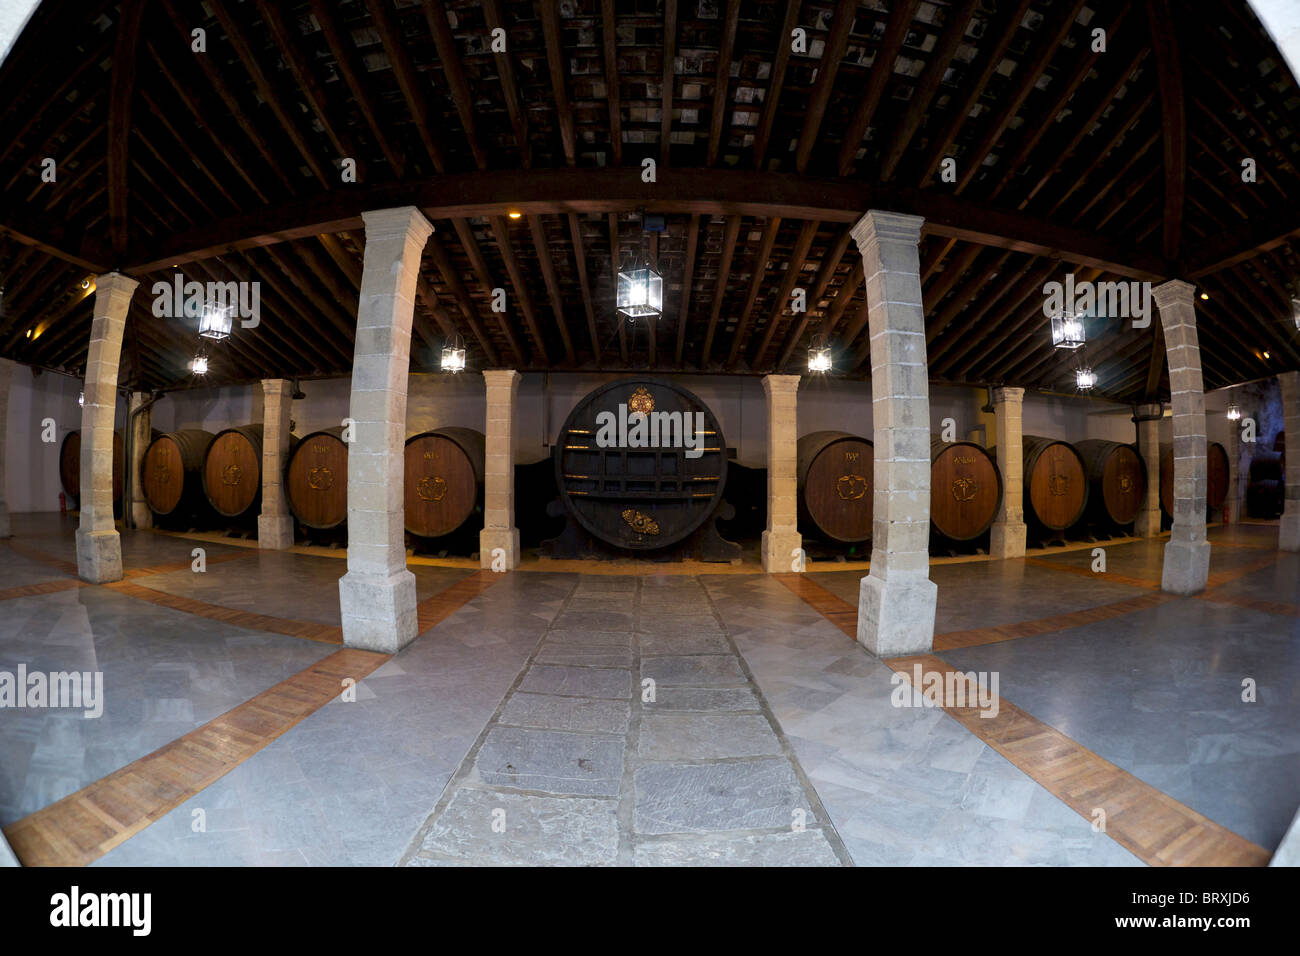 Botti di Sherry in Gonzalez Byass, Jerez. Foto Stock